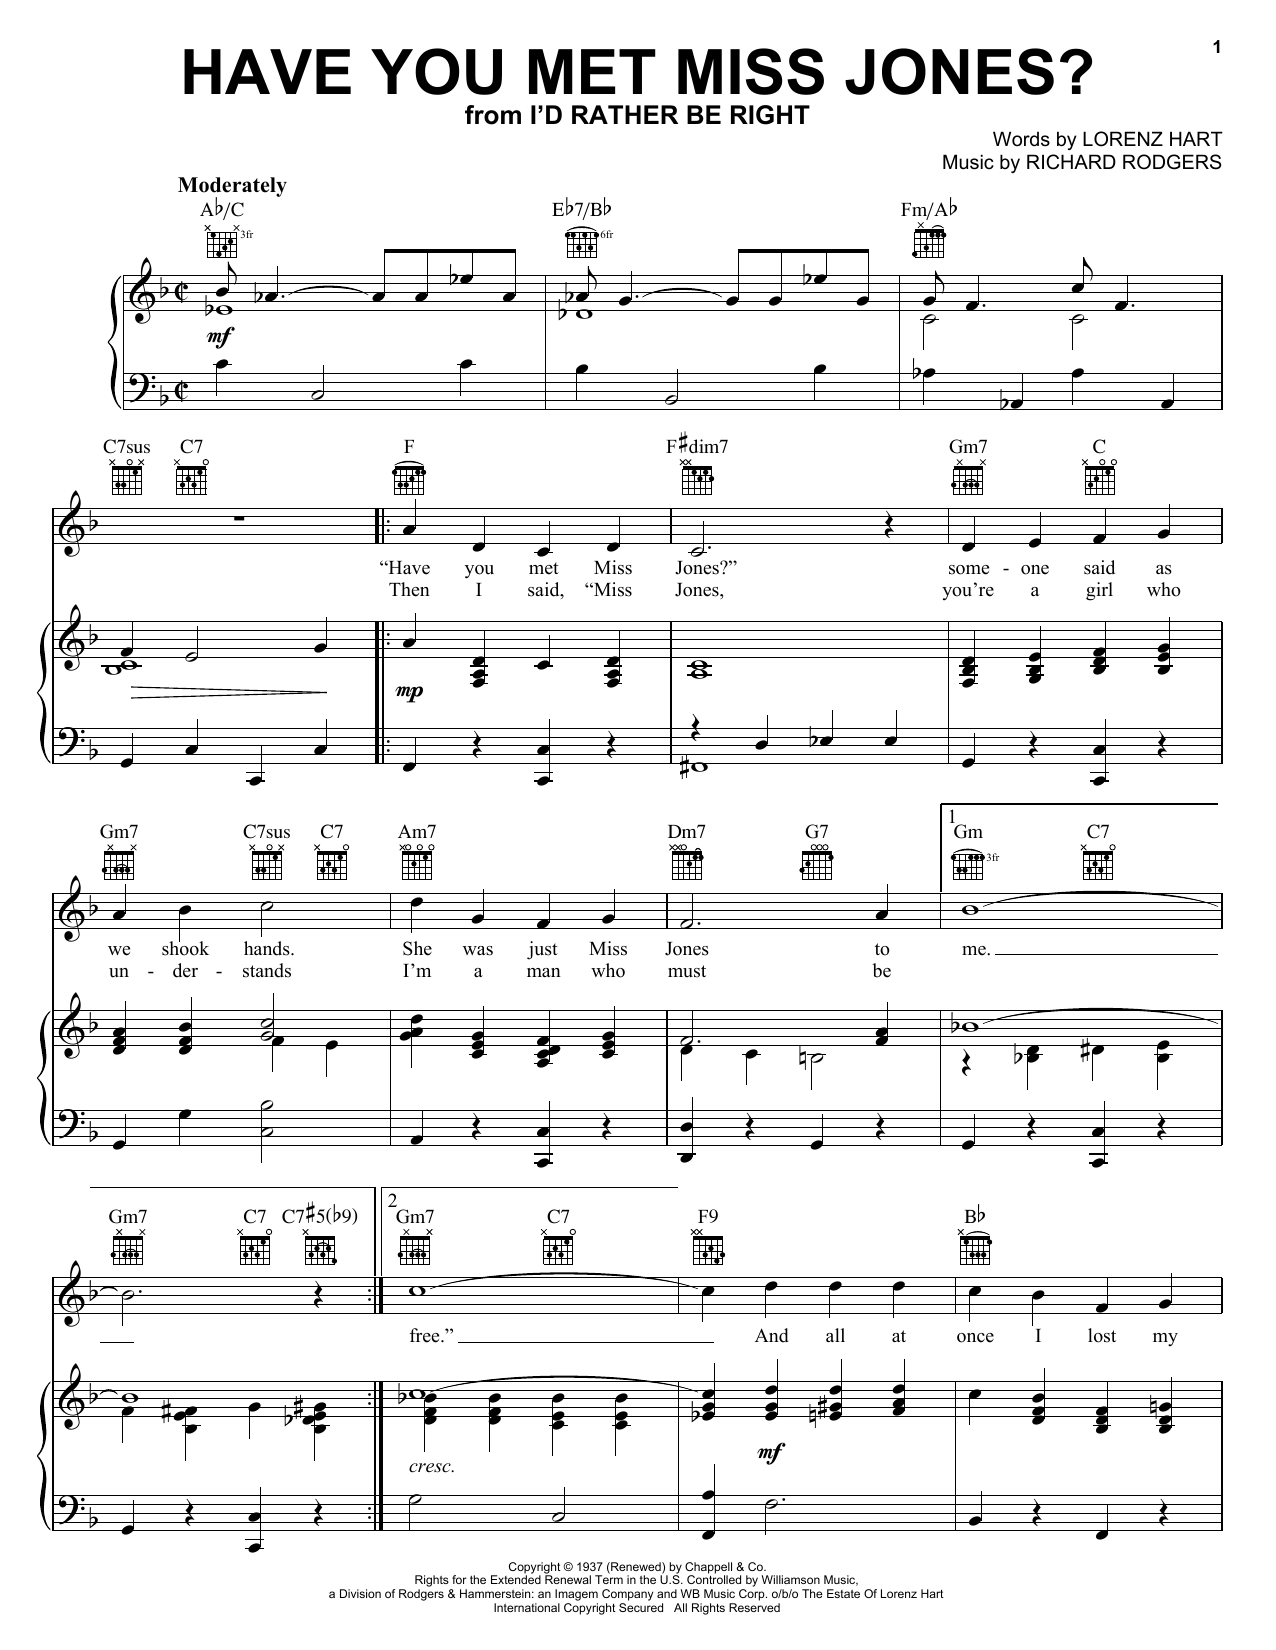 Have You Met Miss Jones? sheet music for voice, piano or guitar by Richard Rodgers